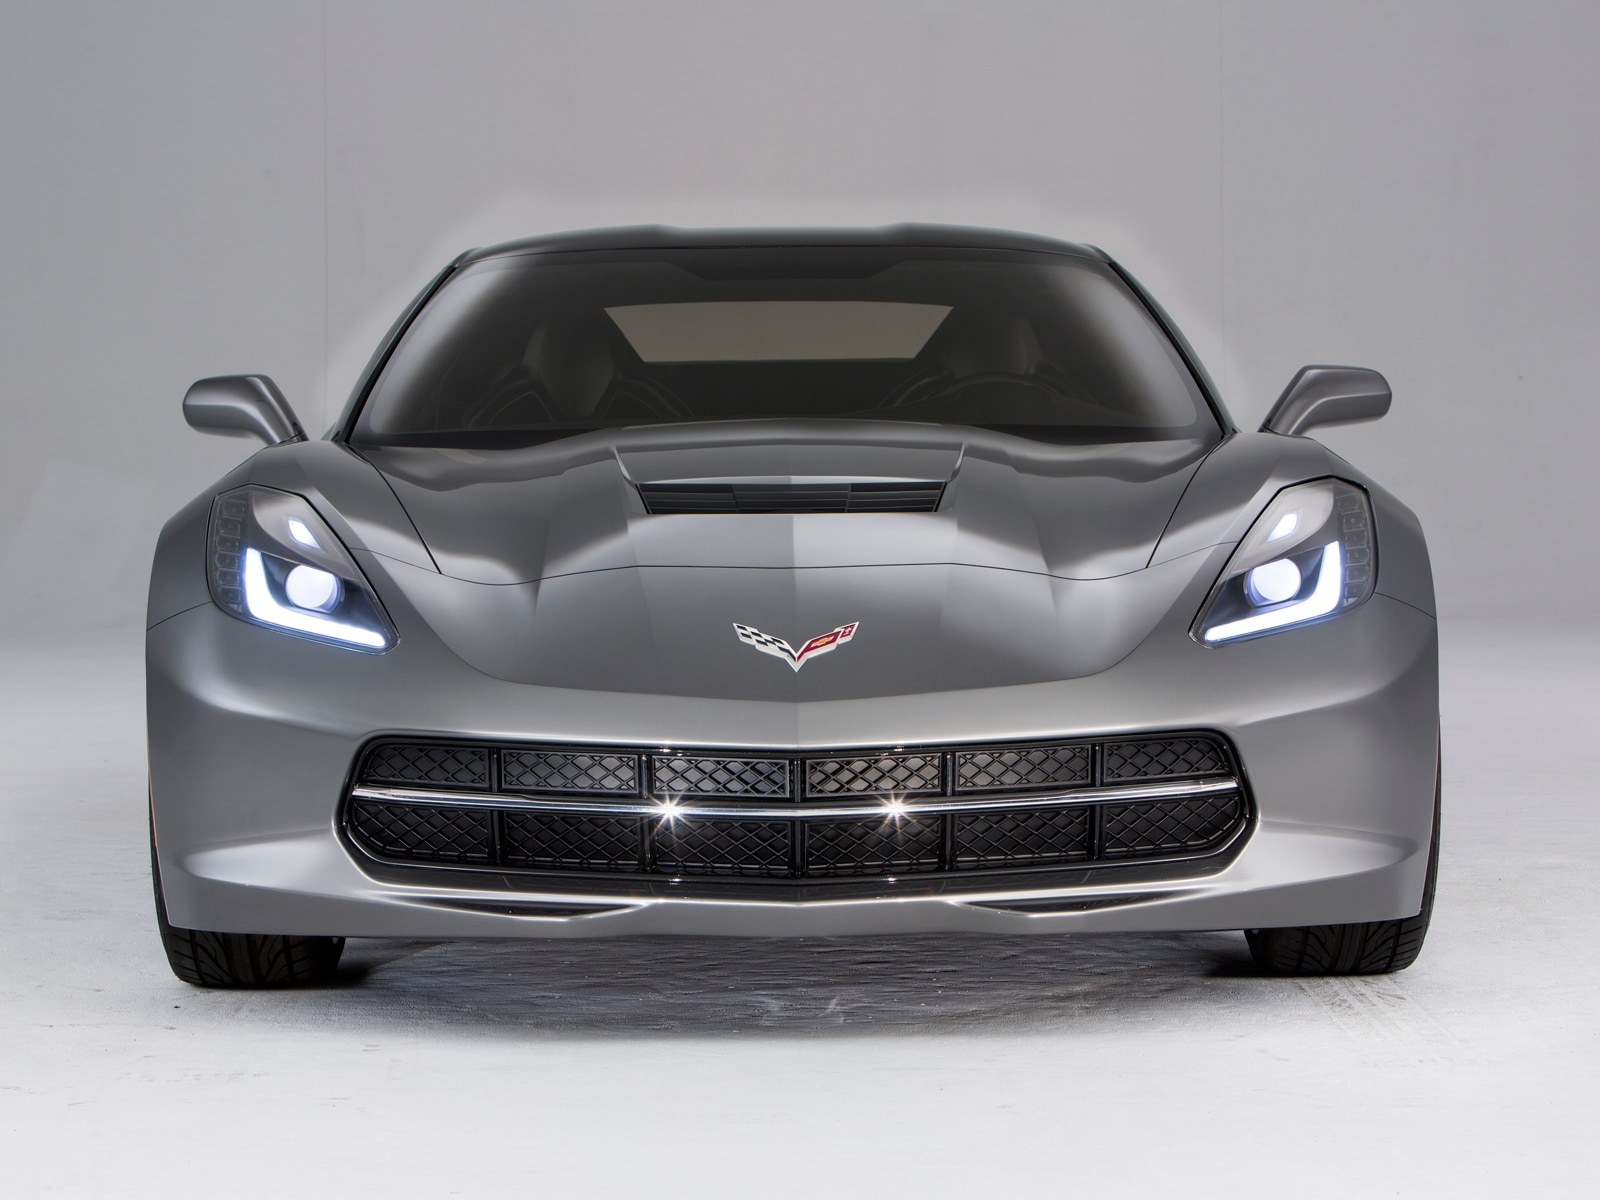 2014 Chevy Corvette C7 Stingray Front Bumper View